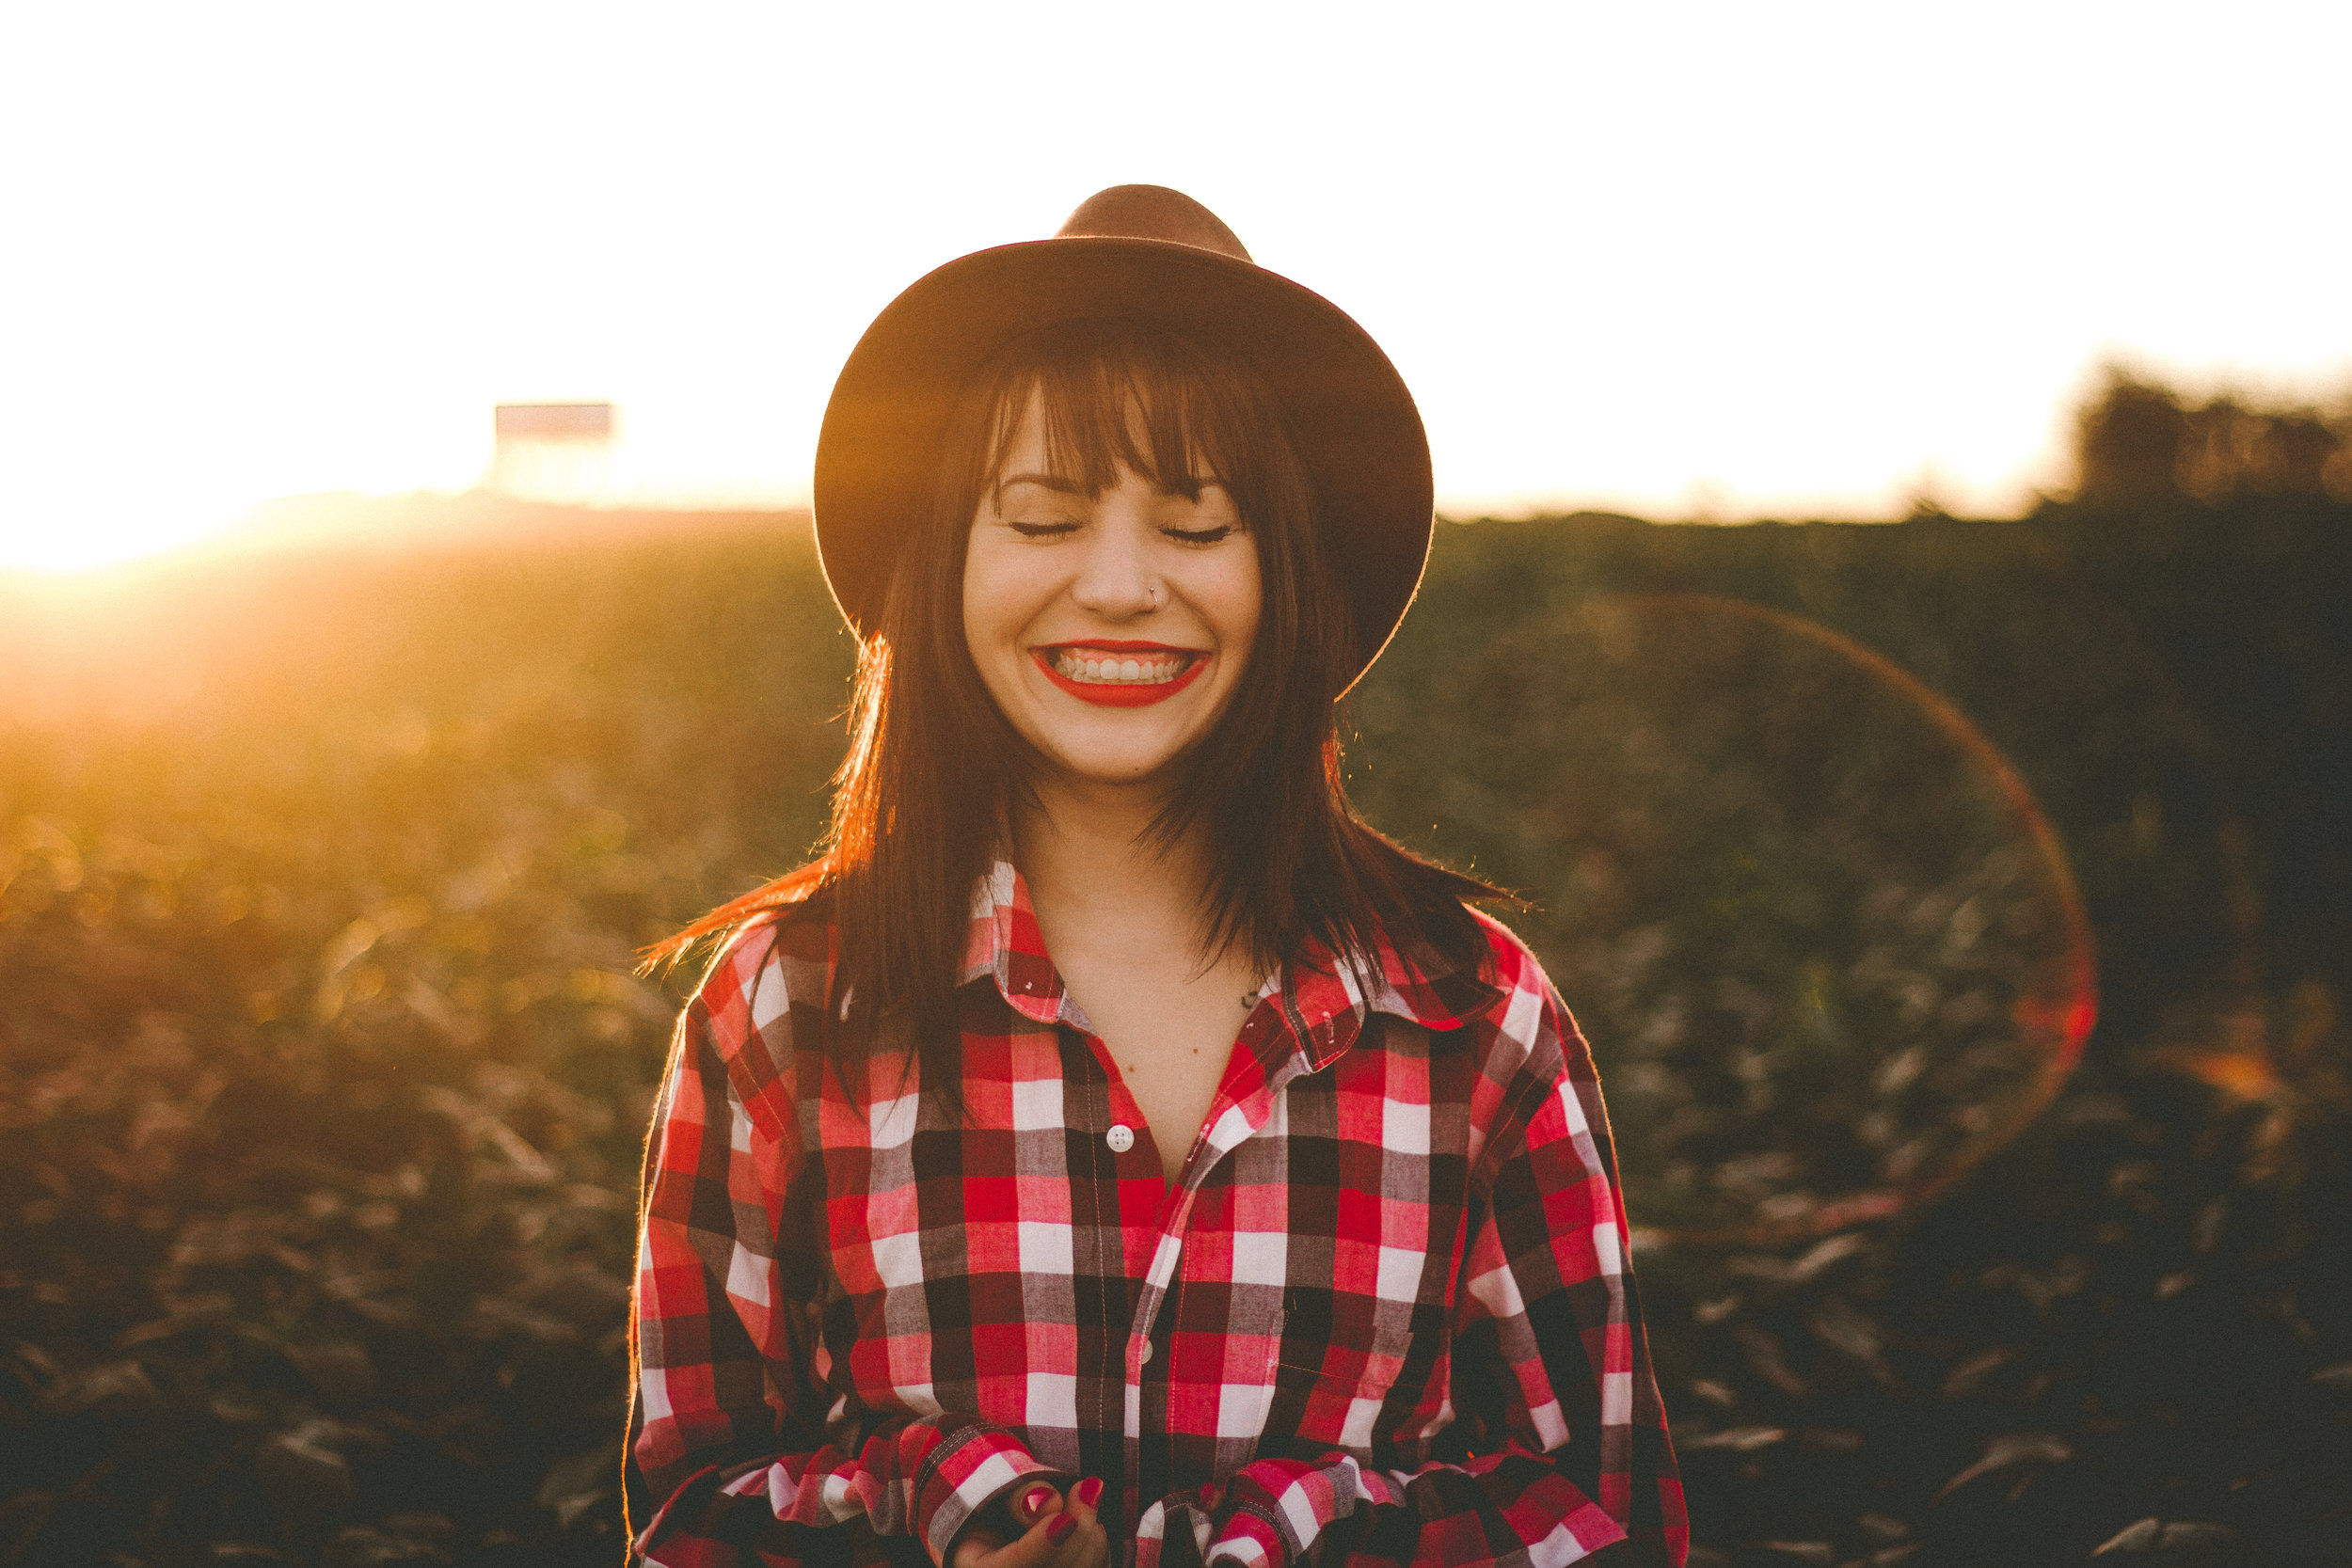 ENHANCING YOUR SMILE - Clear Braces, white fillings, porcelain veneers, hard-to-detect bridges and crowns and professional whitening can bring you more confidence and a brighter smile.